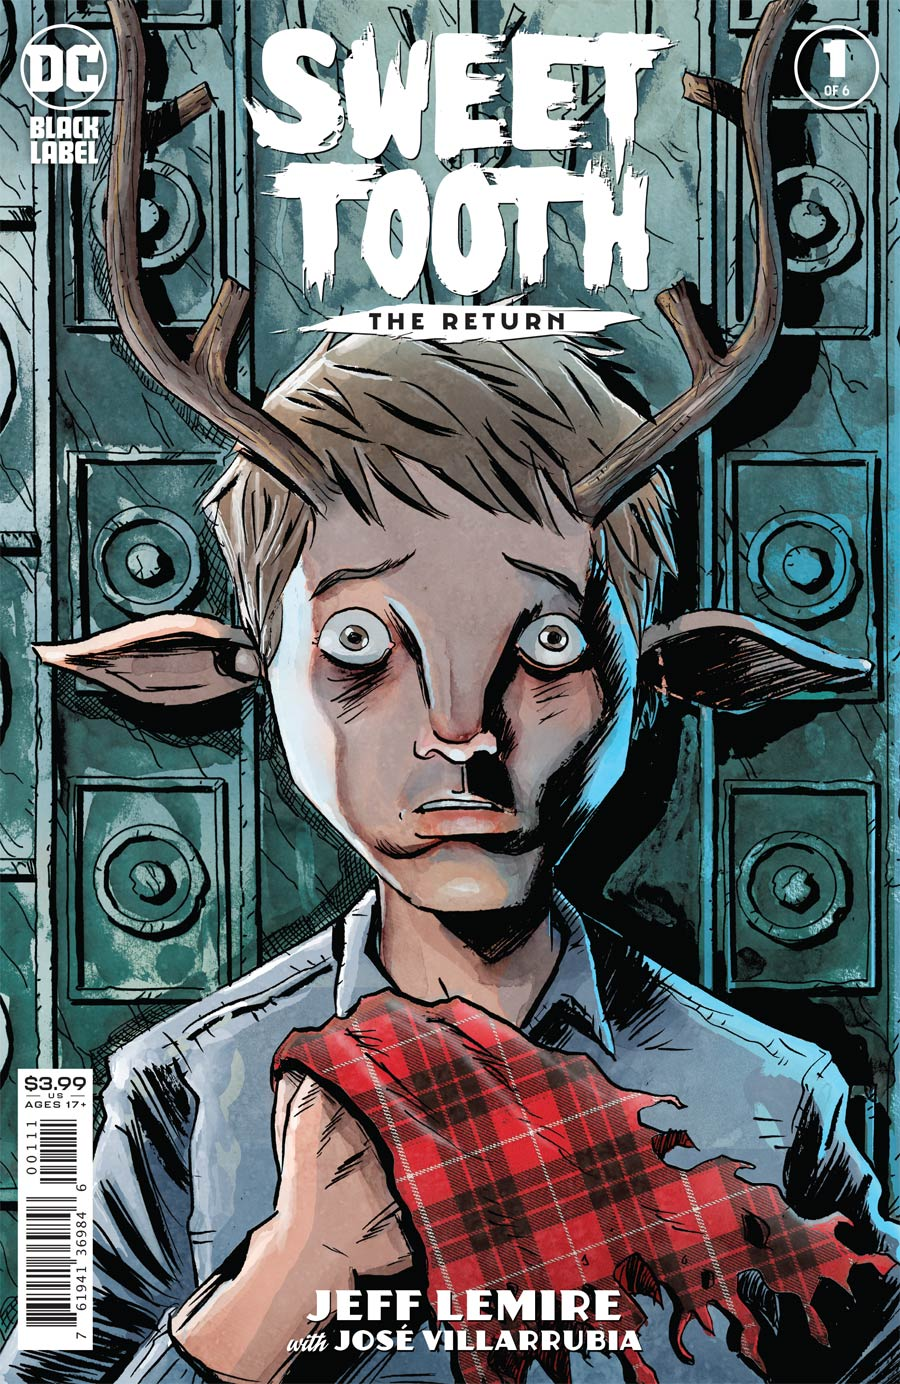 Sweet Tooth The Return #1 Cover A Regular Jeff Lemire Cover